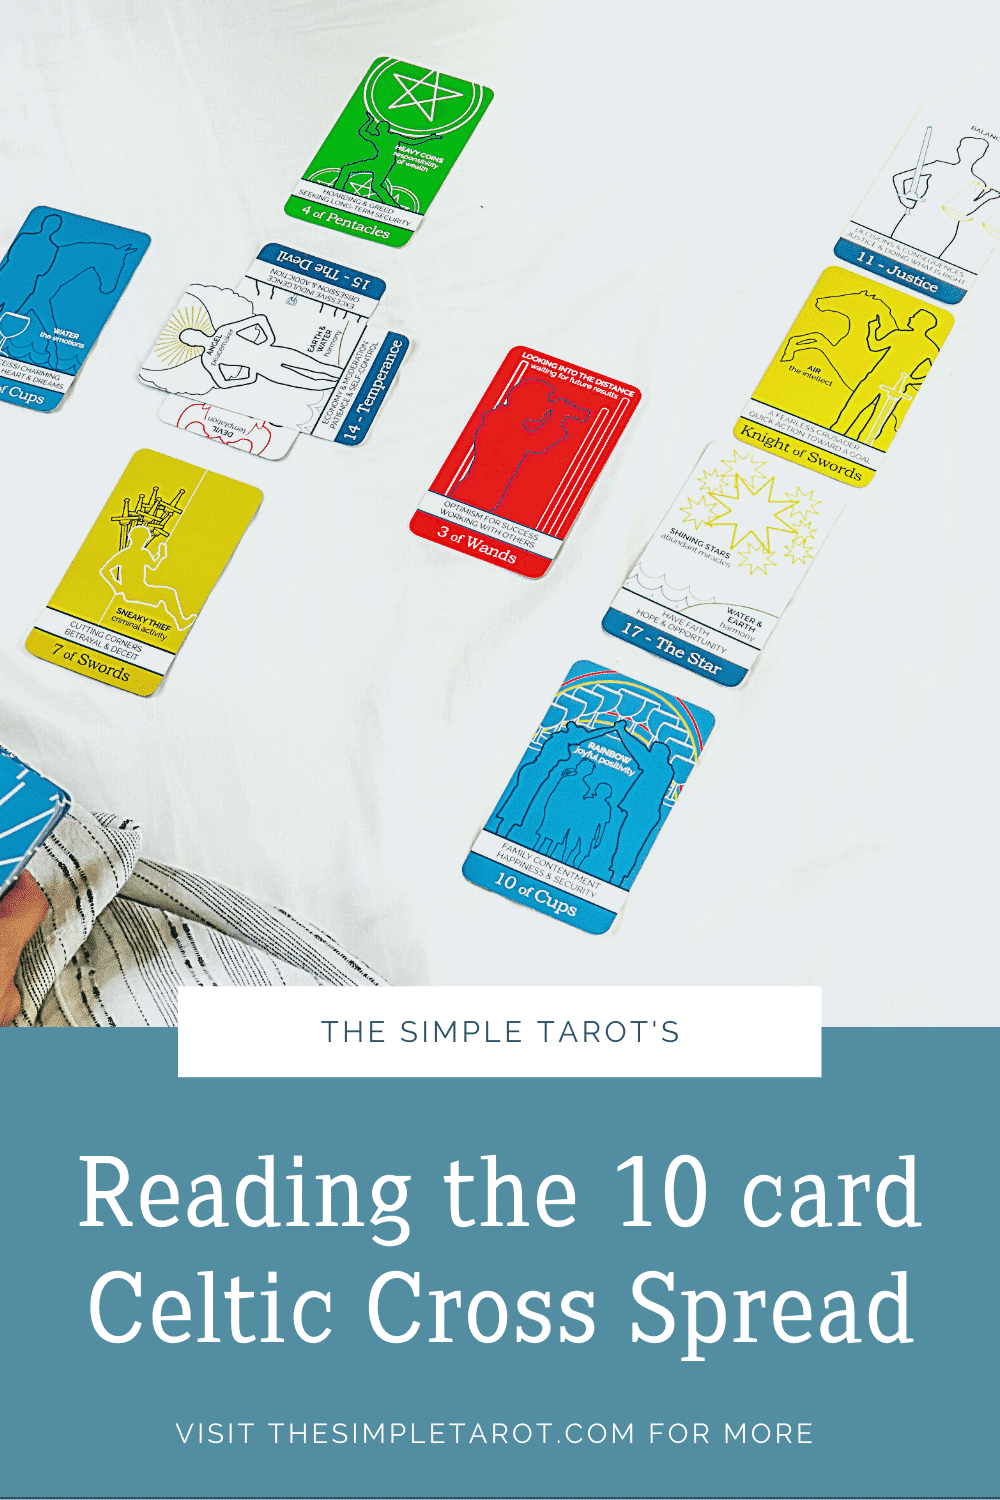 Learn how to read the Celtic Cross Tarot Spread - it's not as hard as it seems! Get a free tarot cheat sheet and other tarot resources from TheSimpleTarot.com. #learntarot #tarot